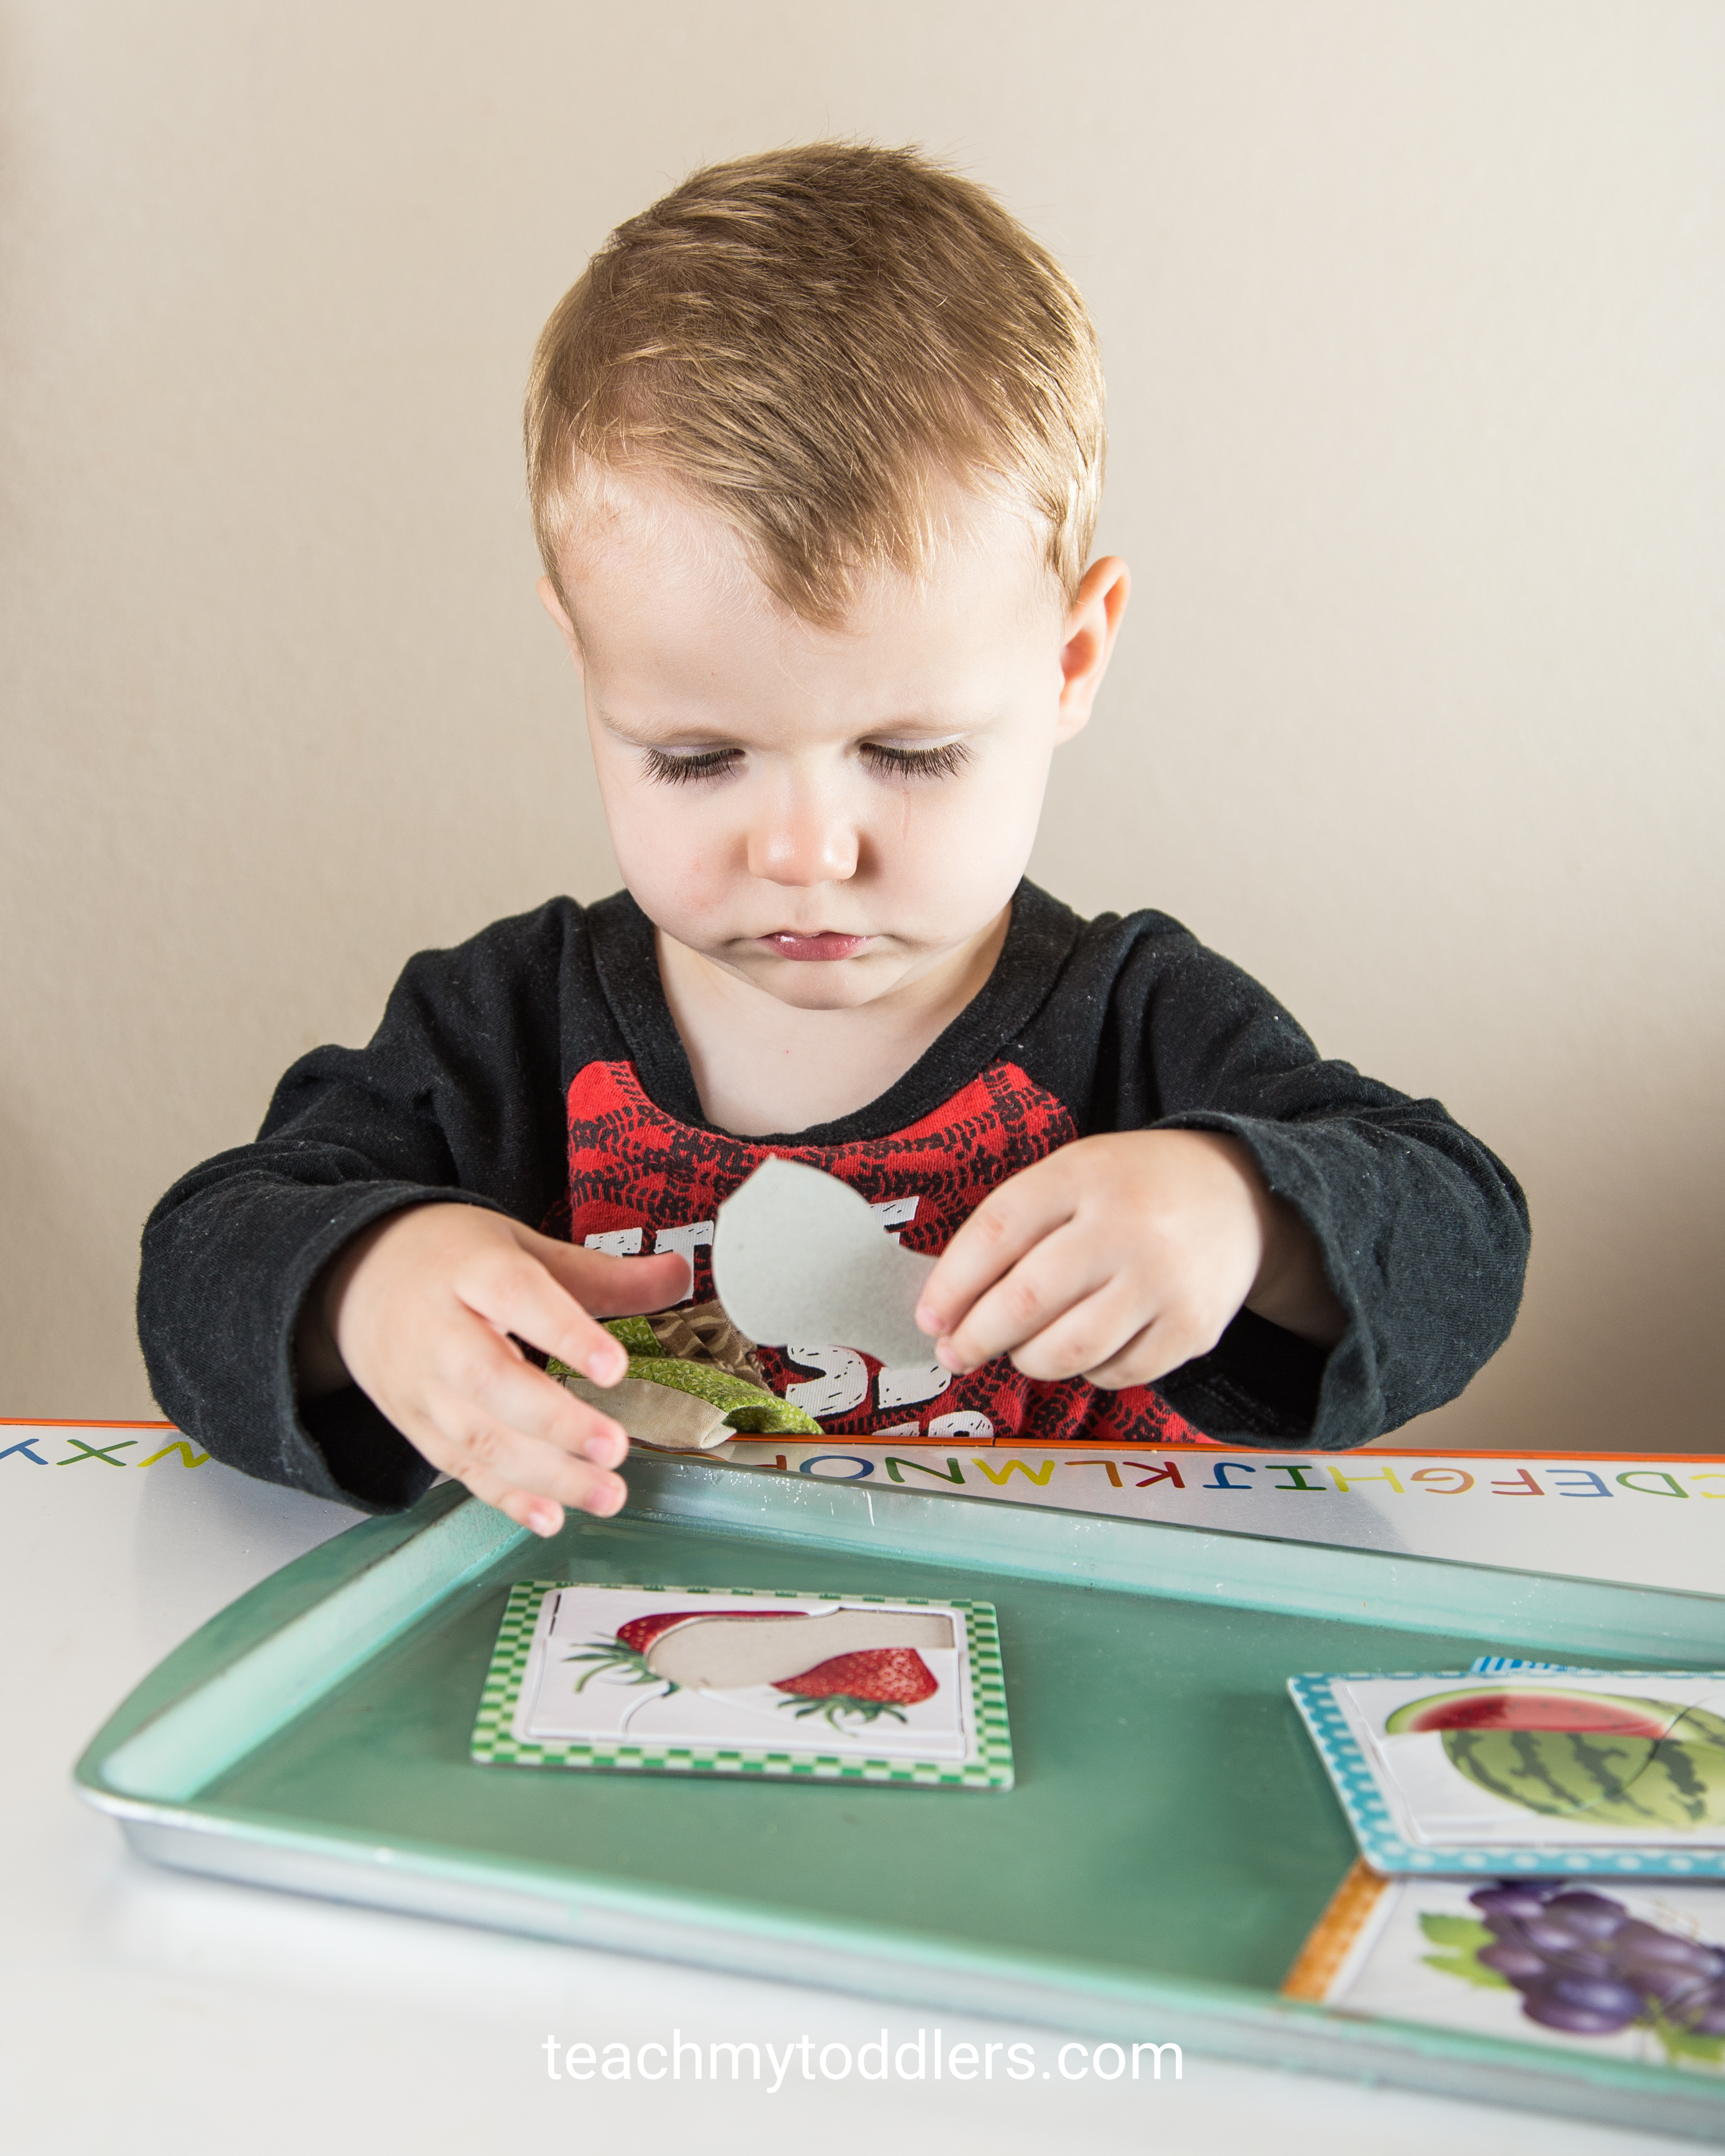 Use these great garden activities to teach toddlers about gardening